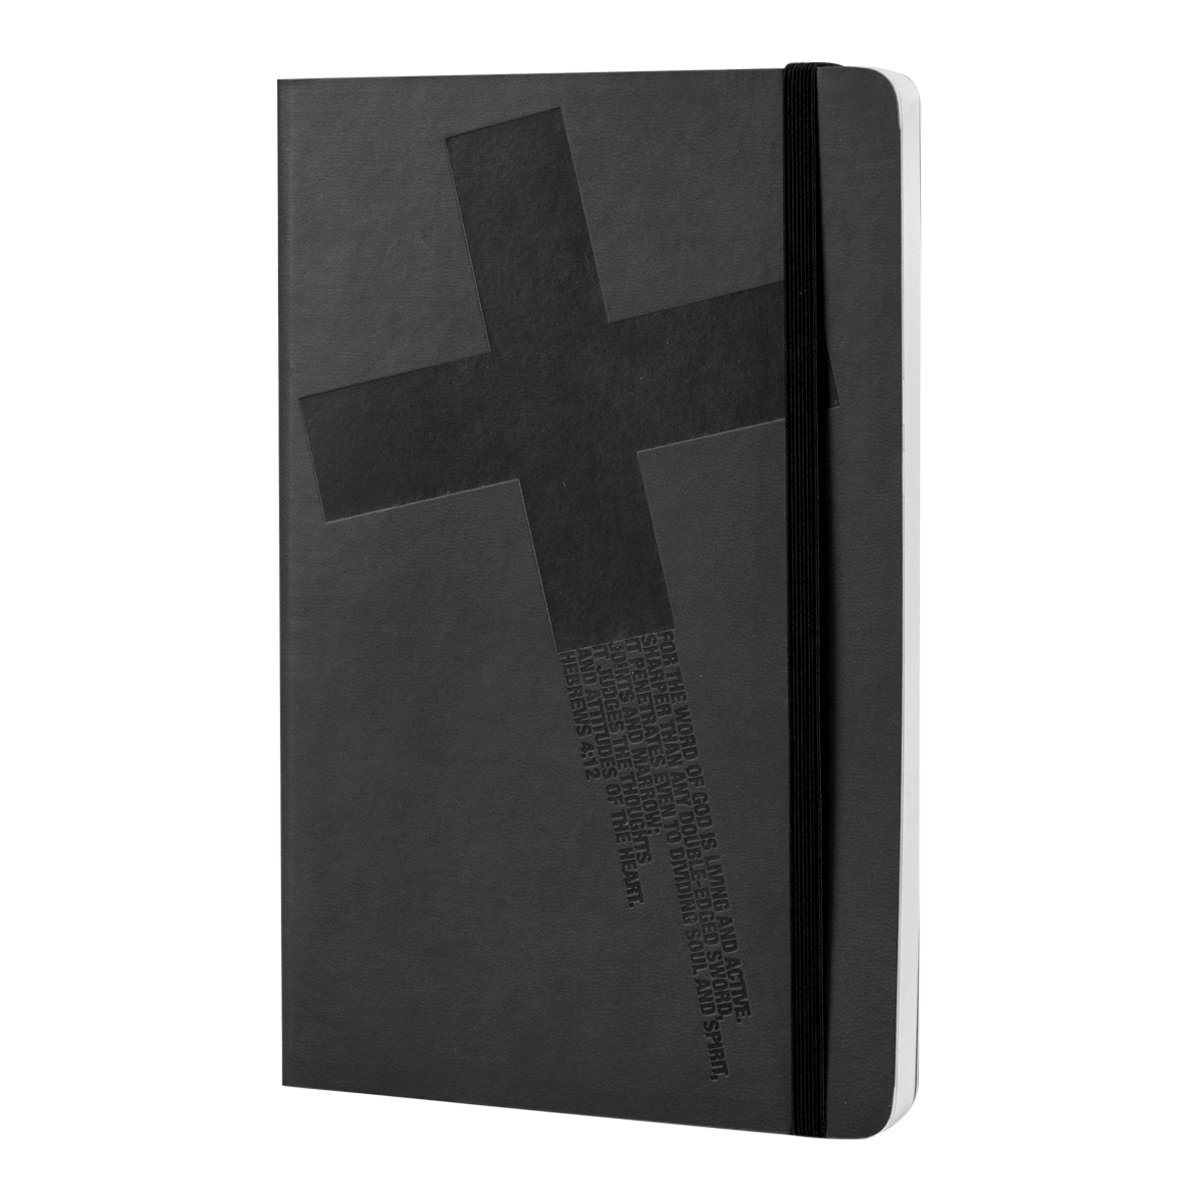 DaySpring Banded Scholar Journal Diary Notebook, Cross Bible Reading Guide (82813)